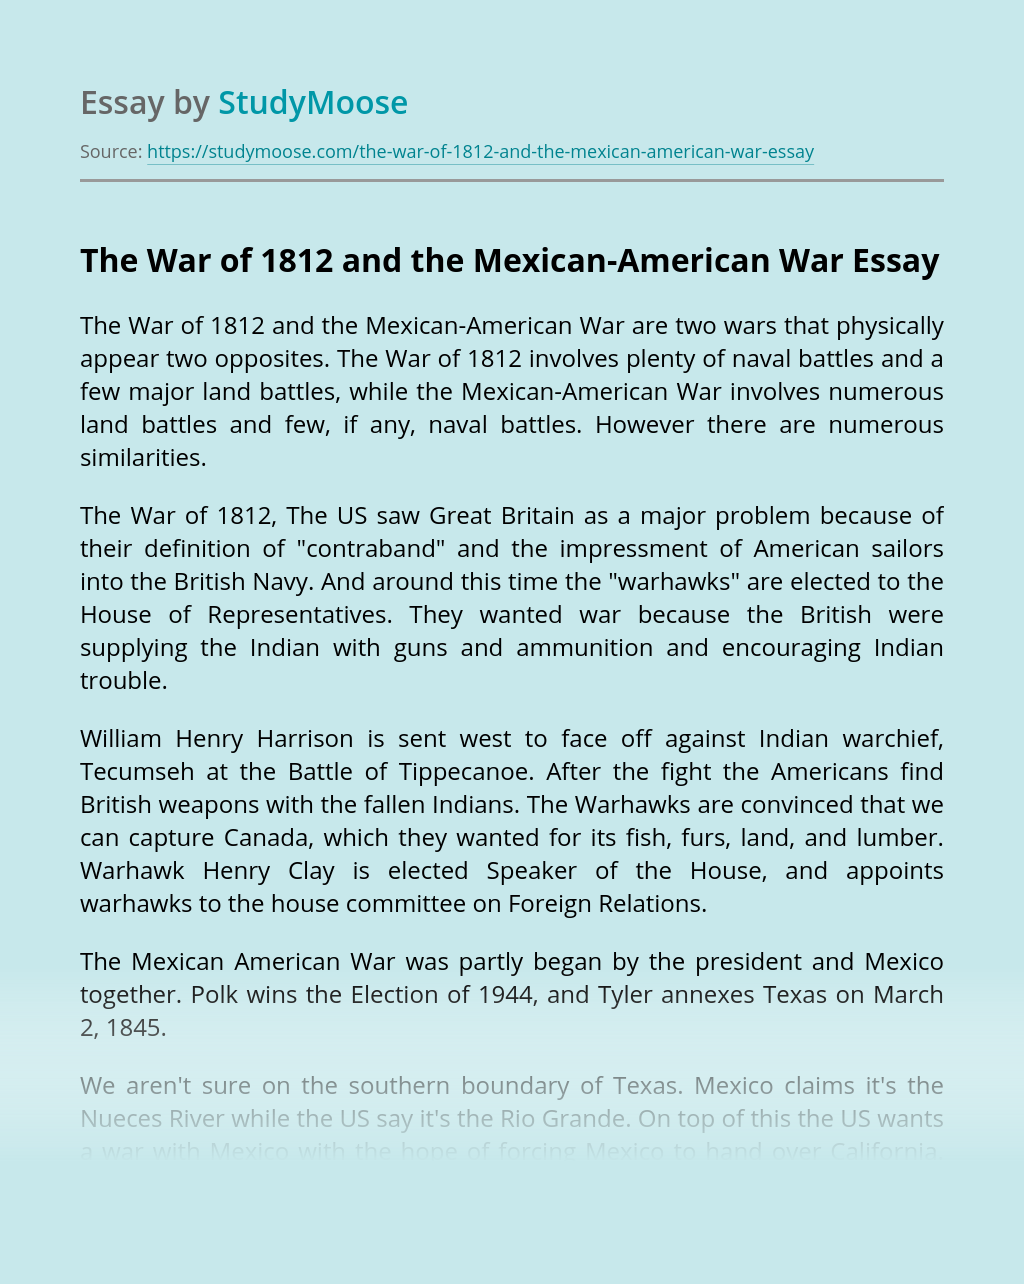 The War of 1812 and the Mexican-American War